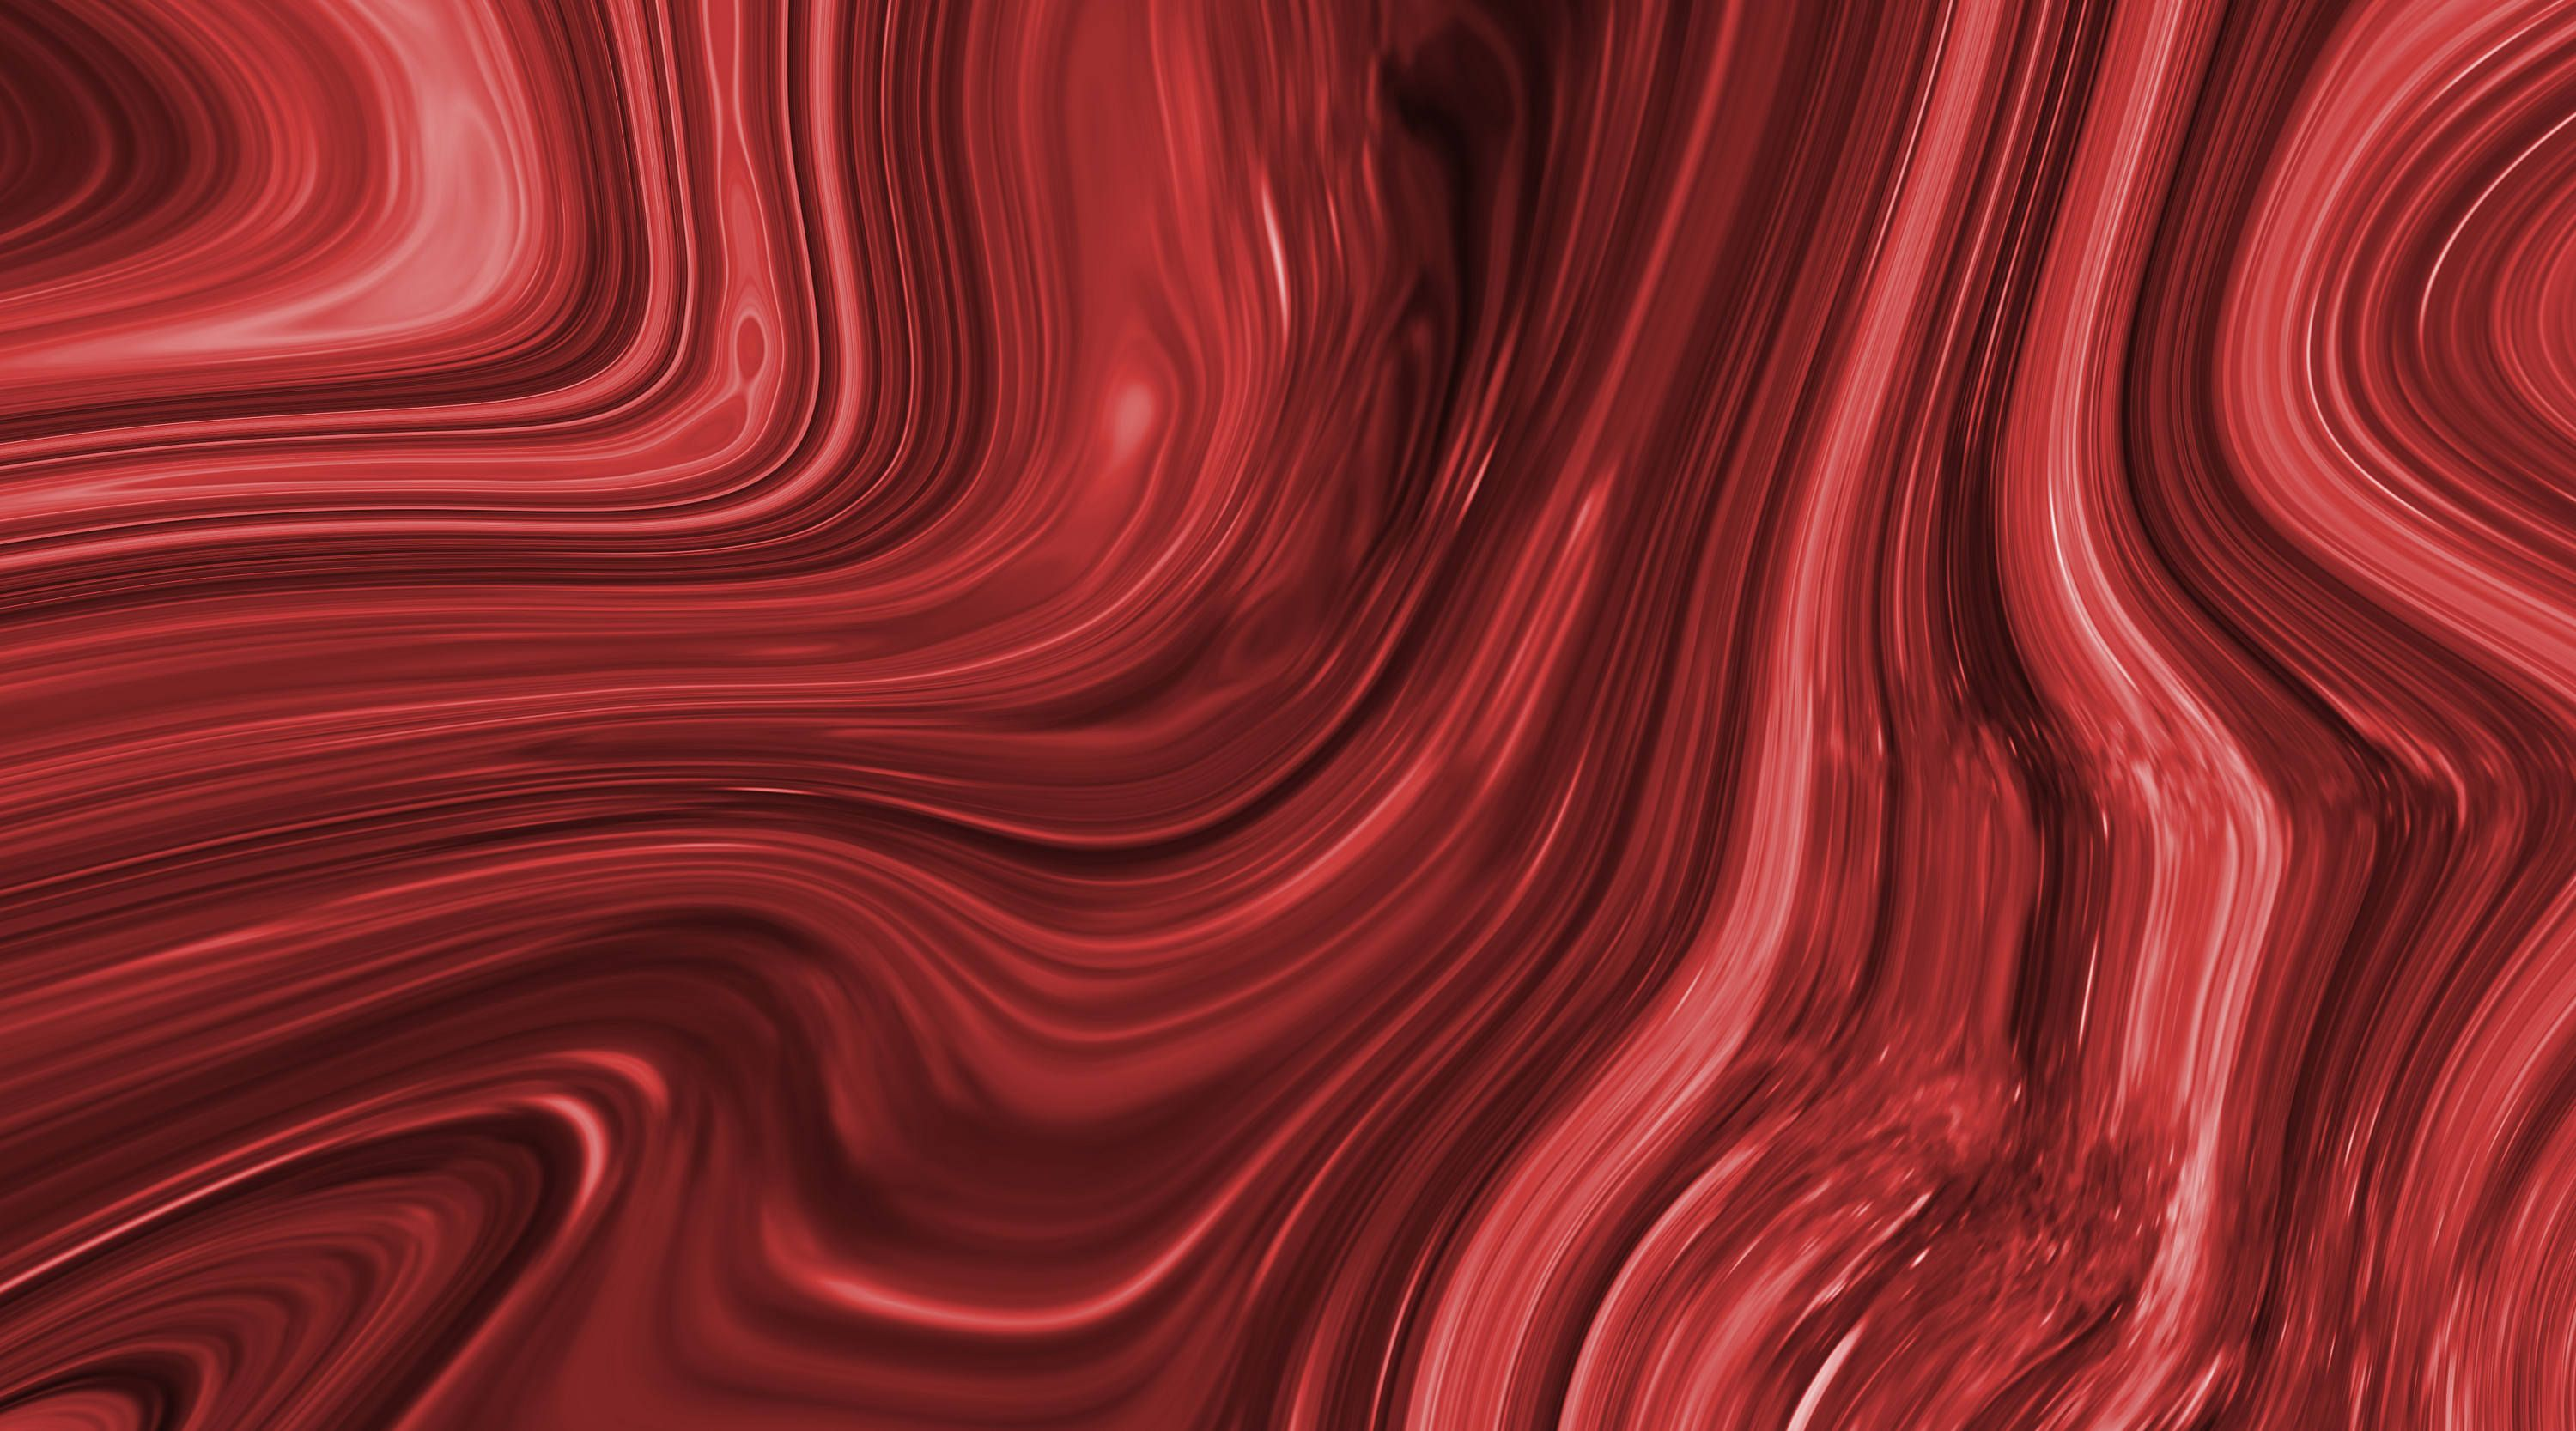 3000x1667 Red Marble wallpapers - Red marble wall covering